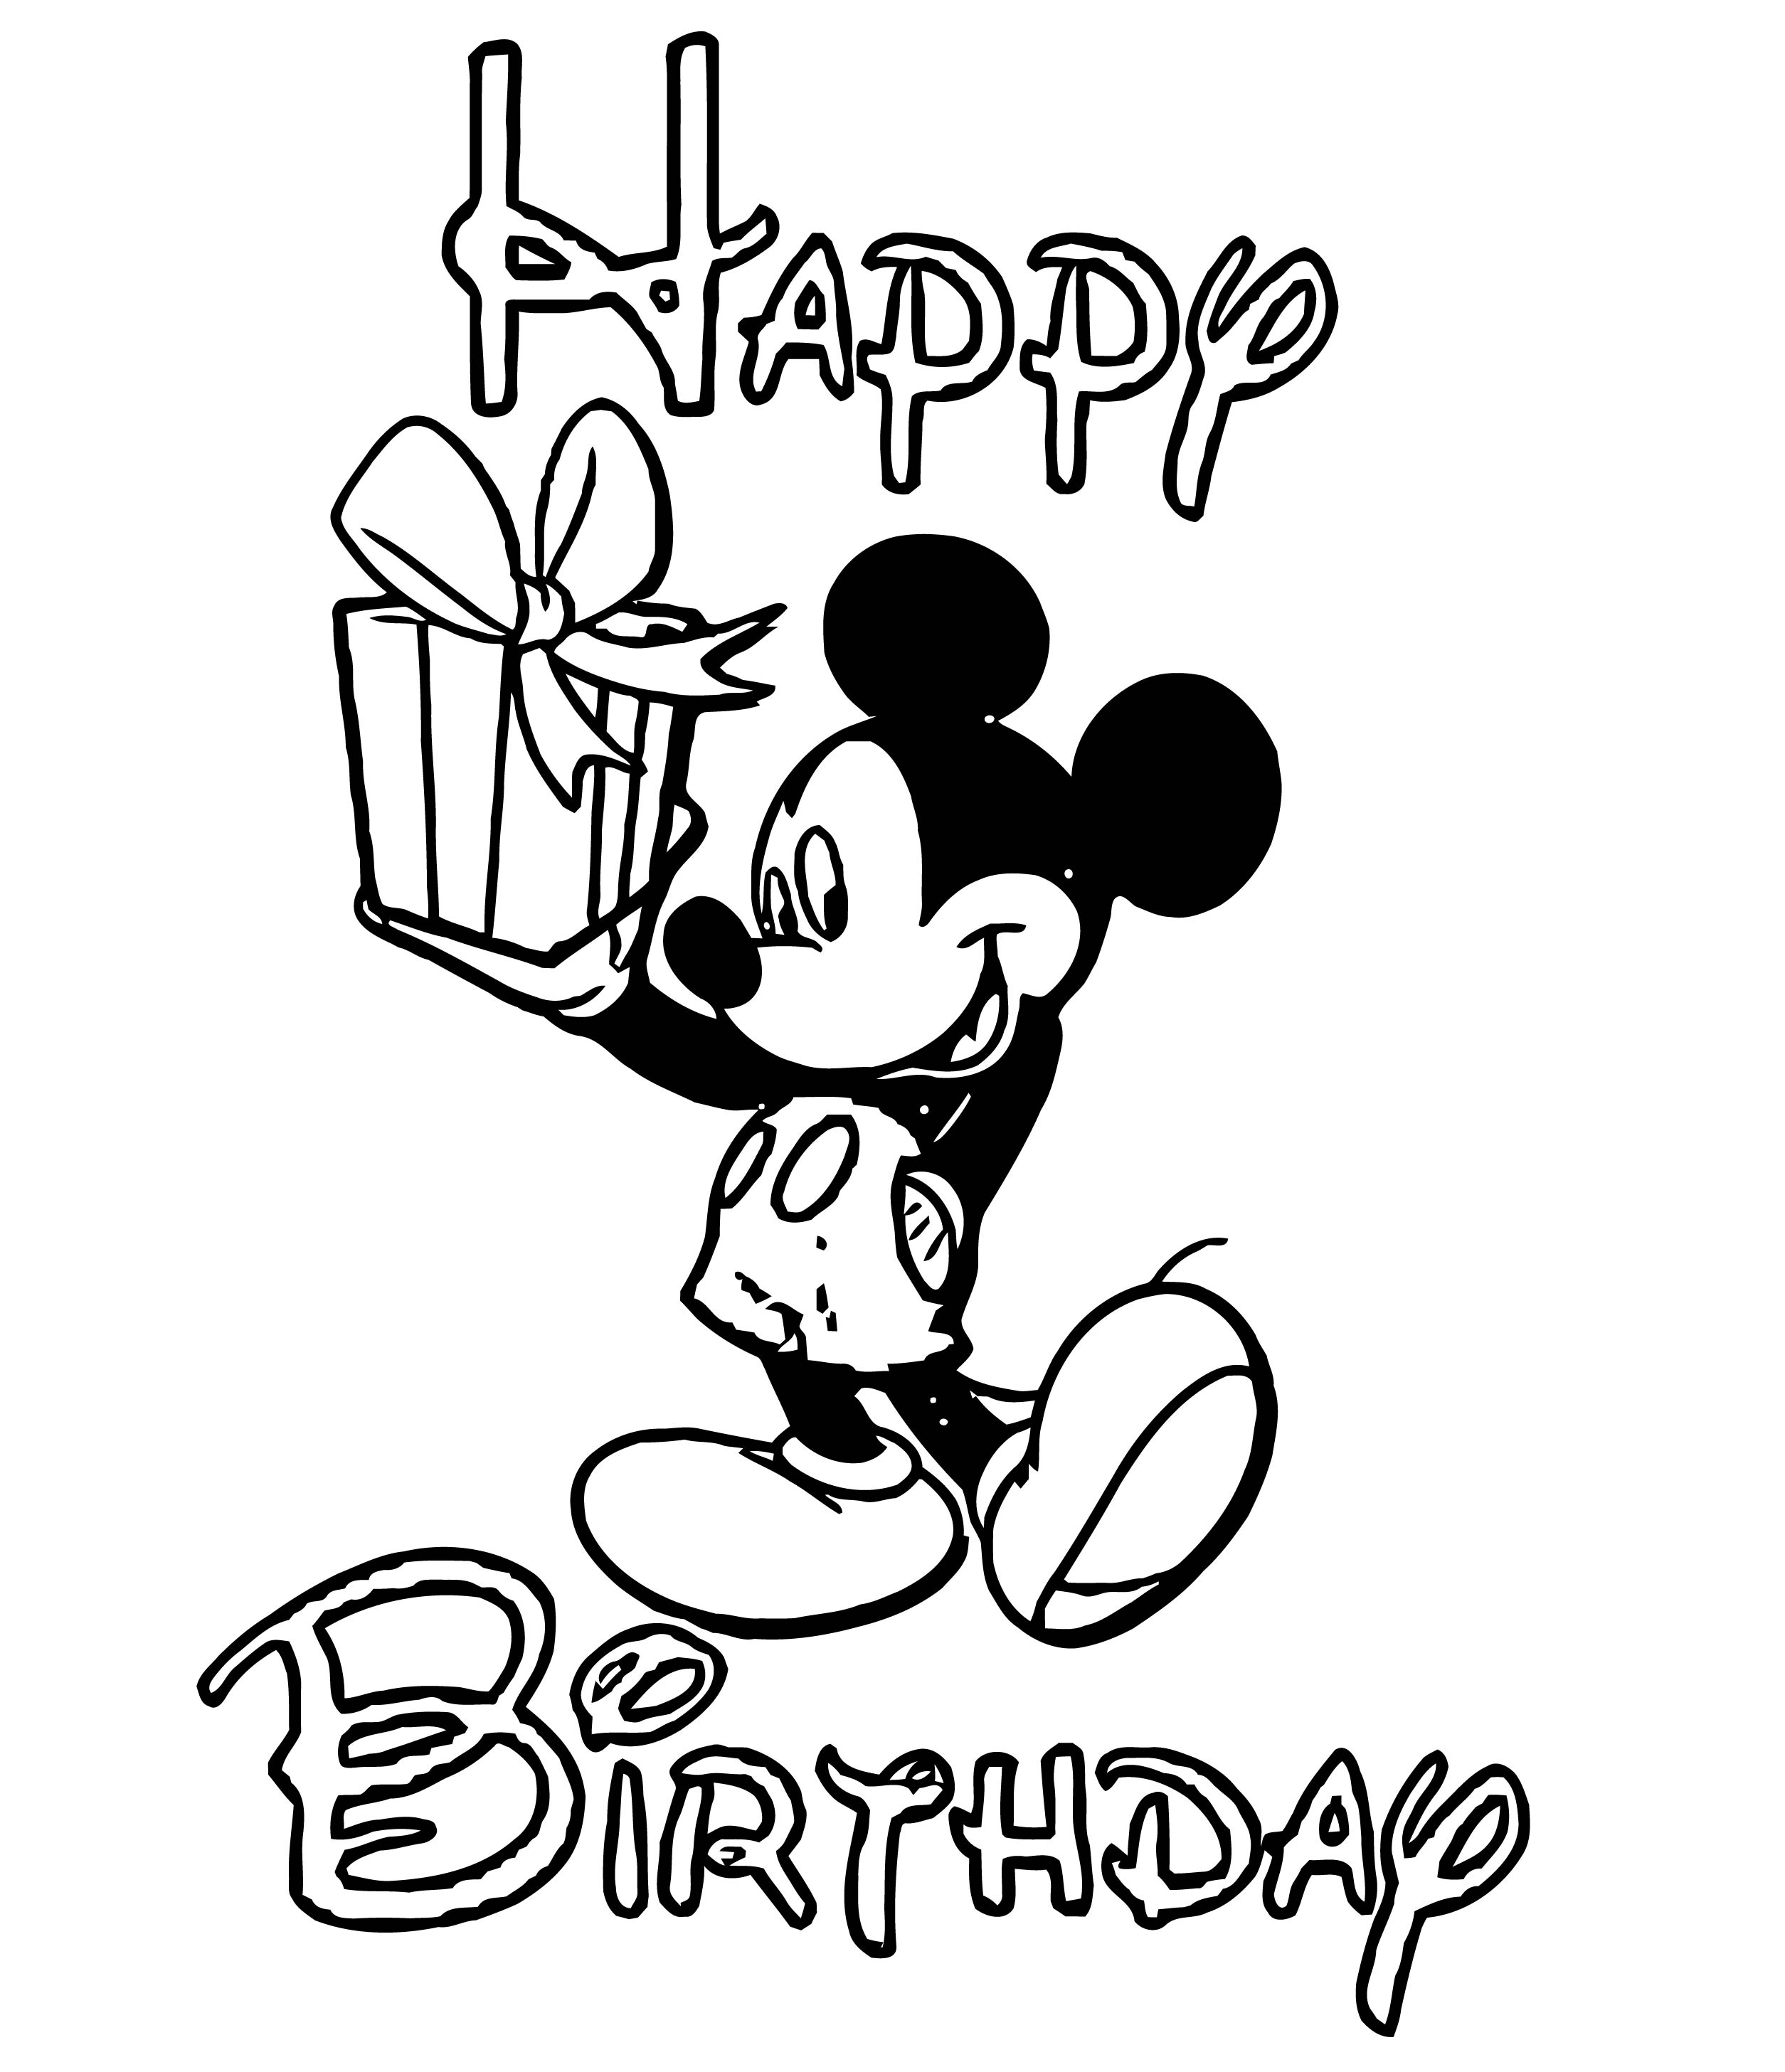 Mickey Mouse Cartoon Coloring Page Wecoloringpage 124